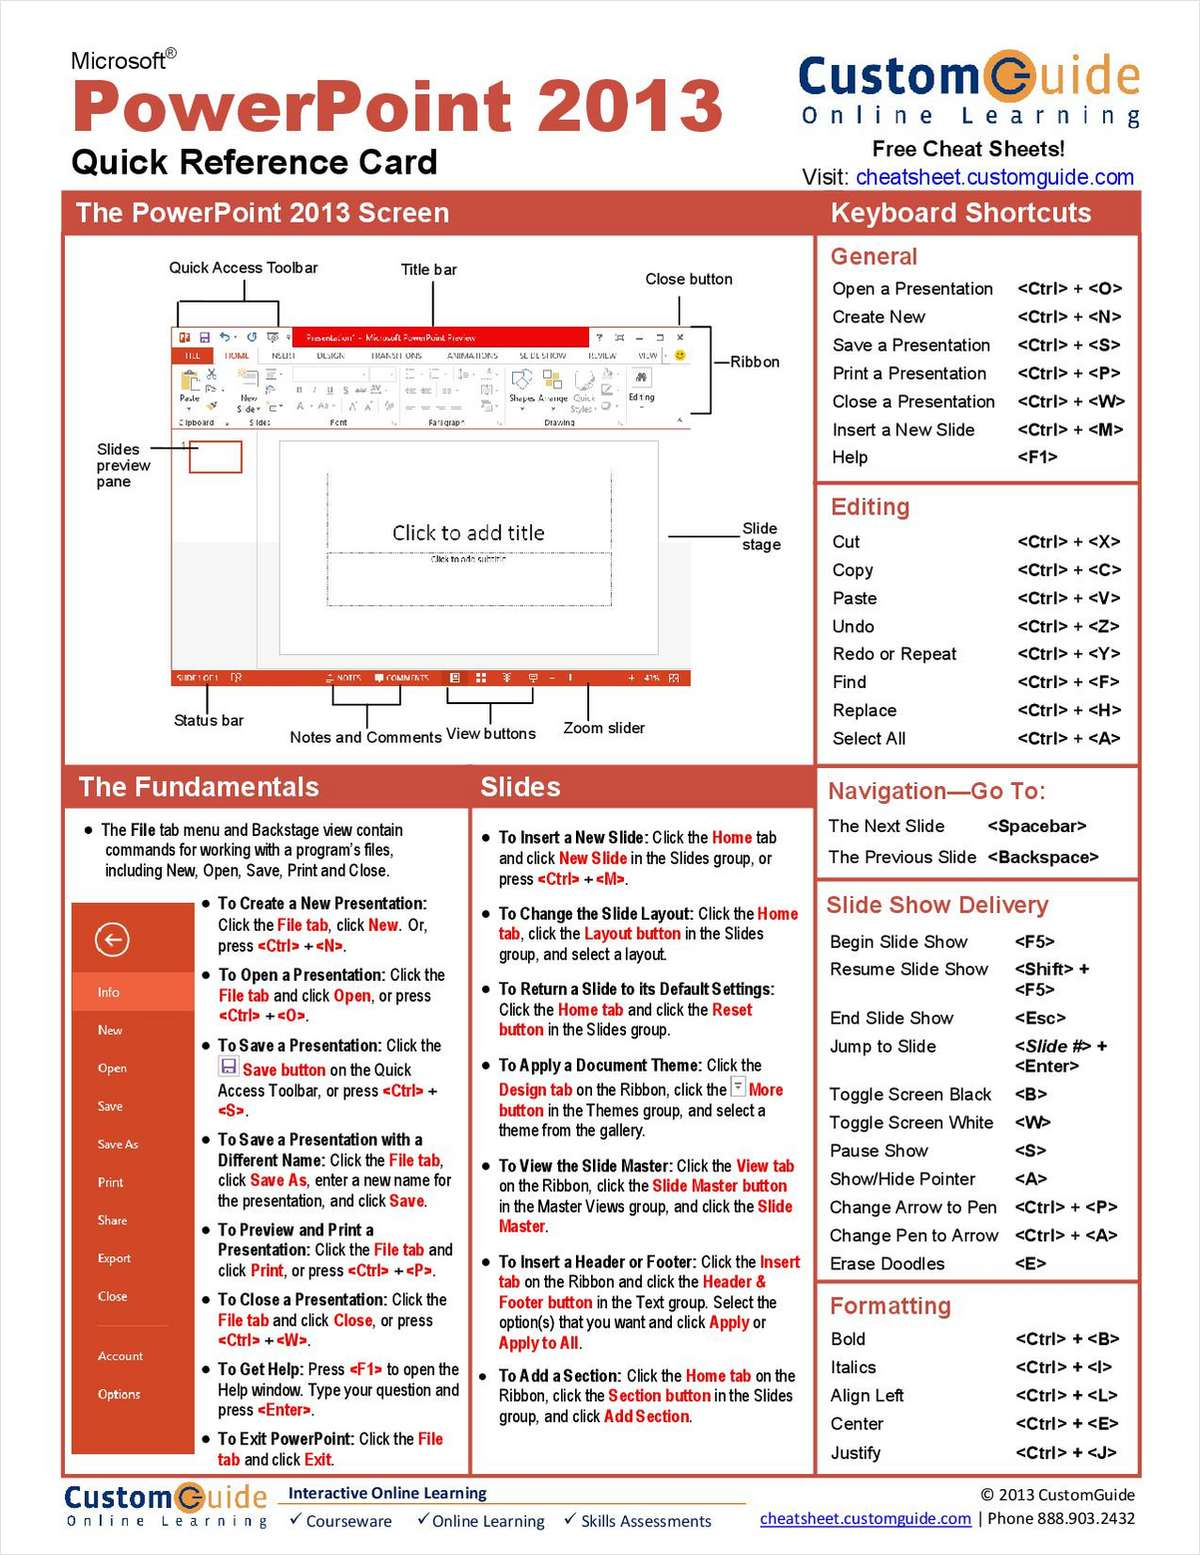 Microsoft PowerPoint 2013 -- Free Quick Reference Card